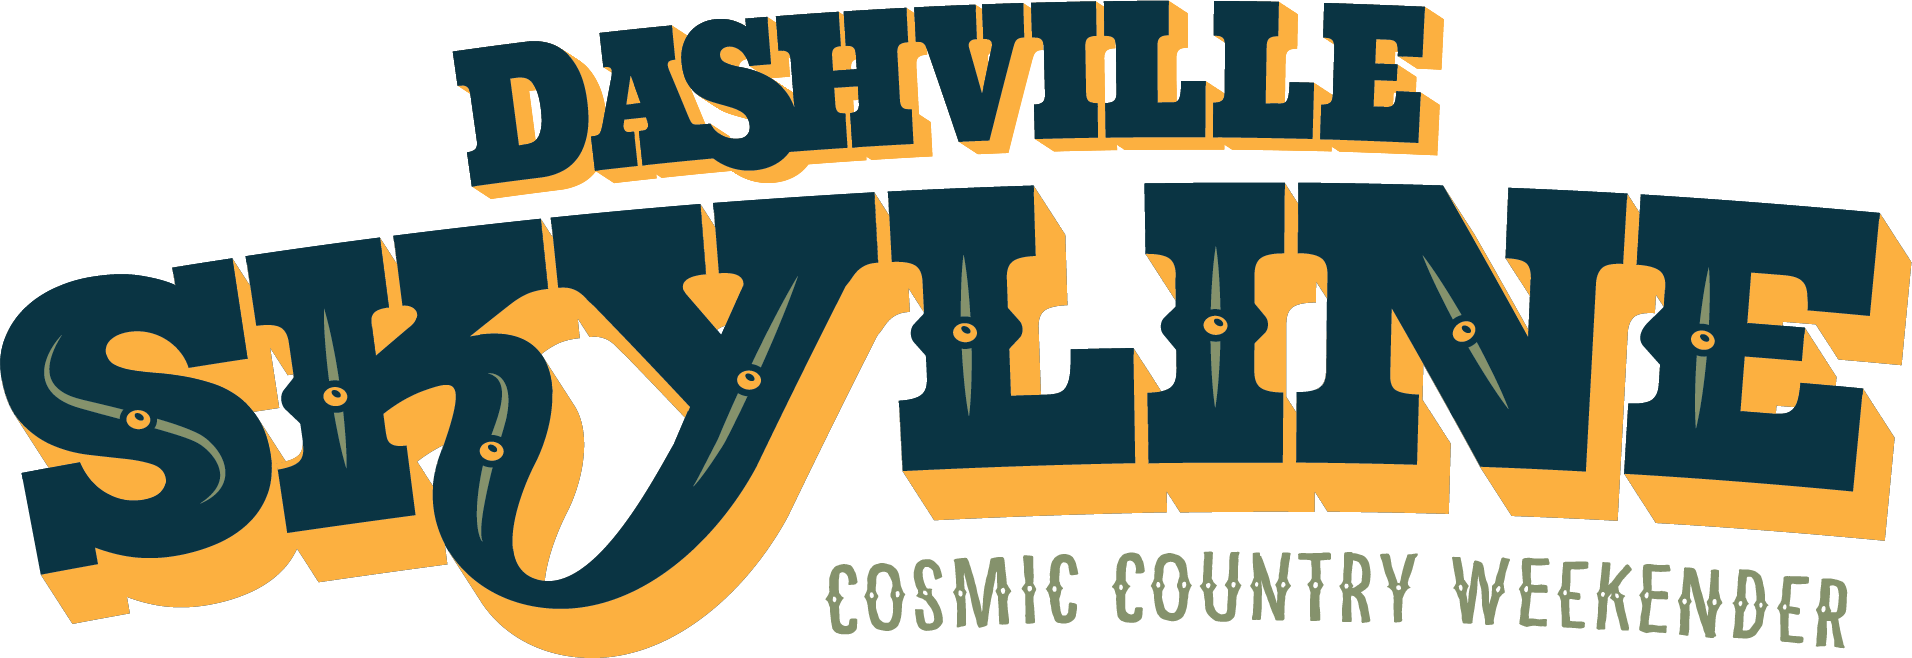 Dashville Skyline Logo